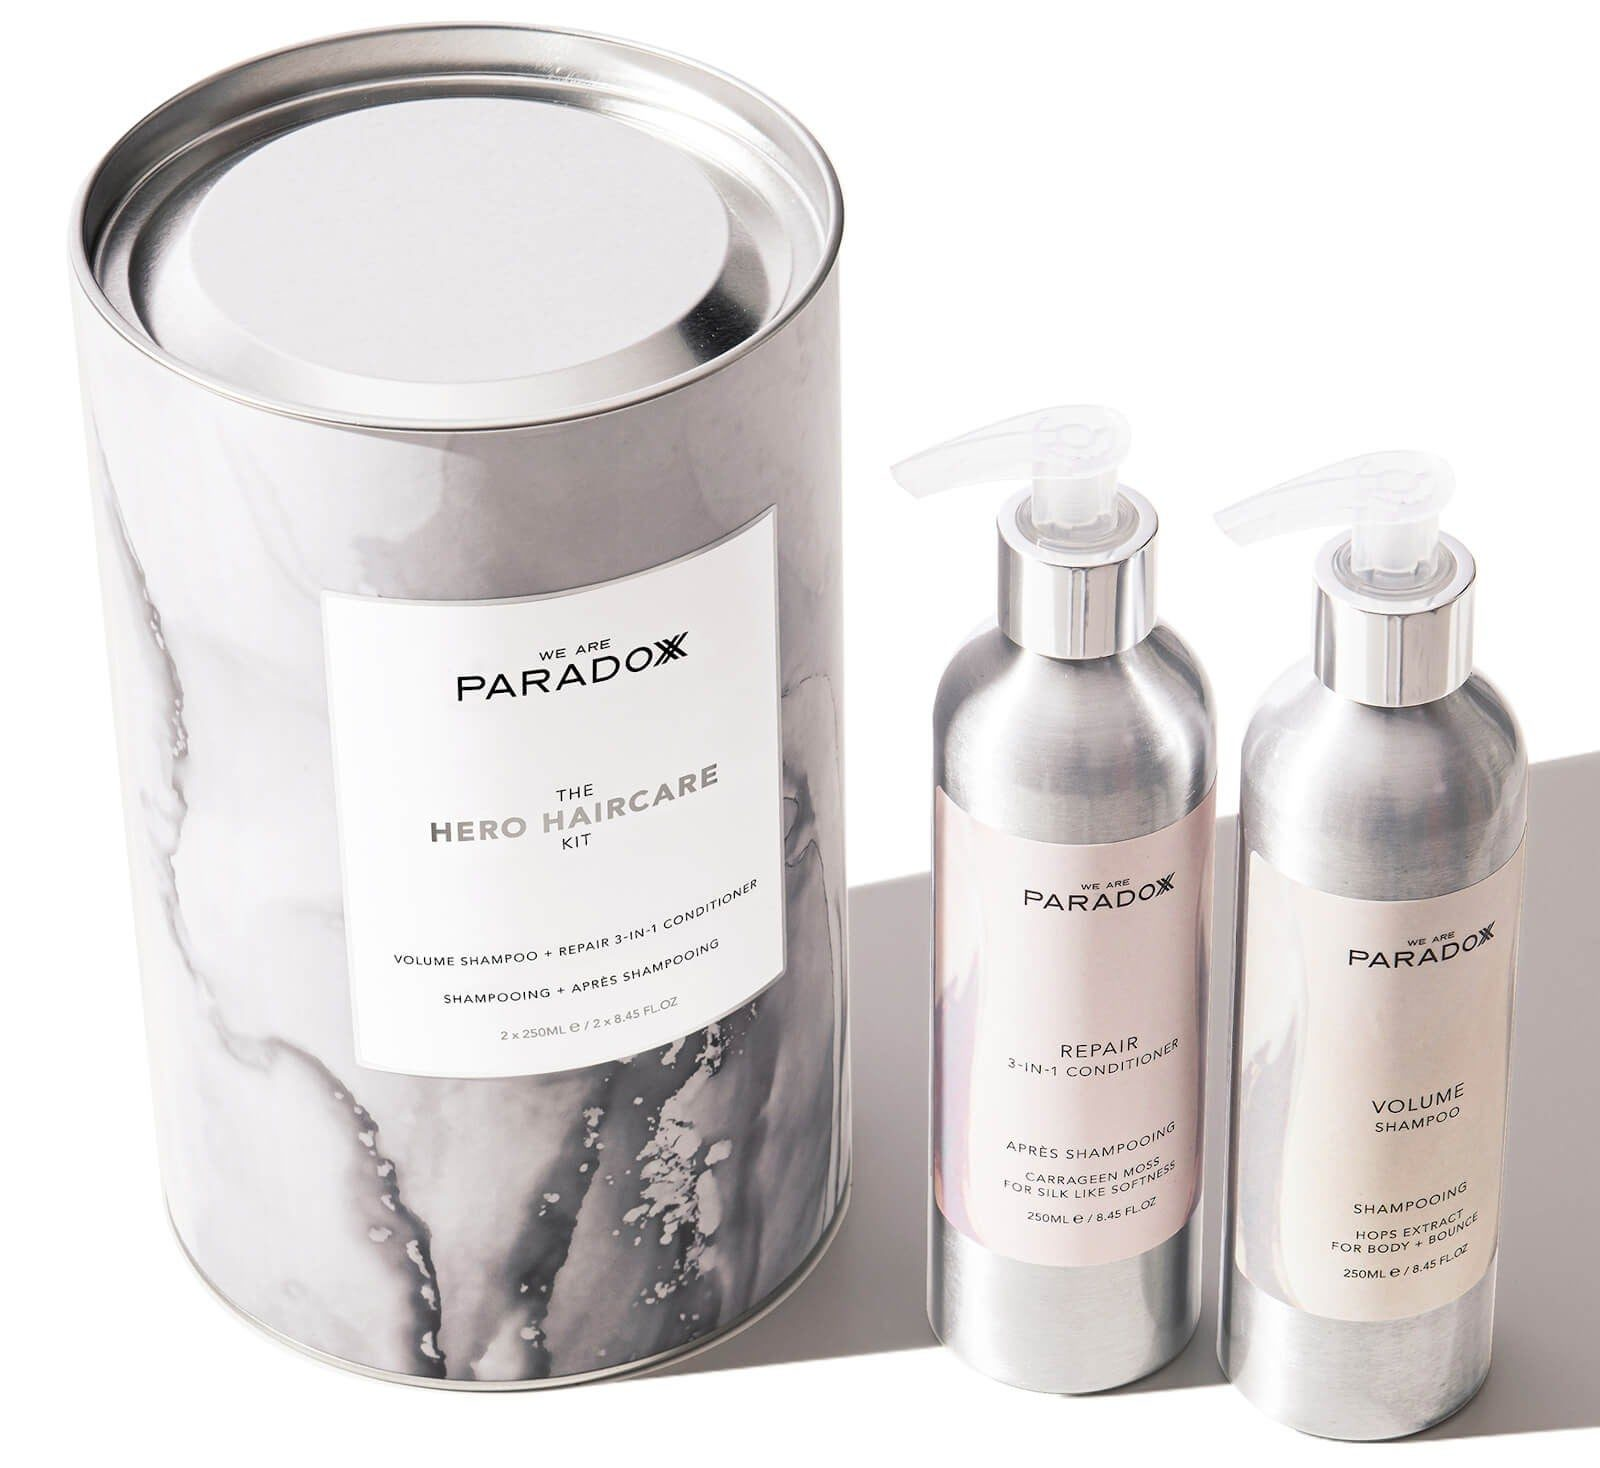 We Are Paradoxx The Hero Haircare Kit